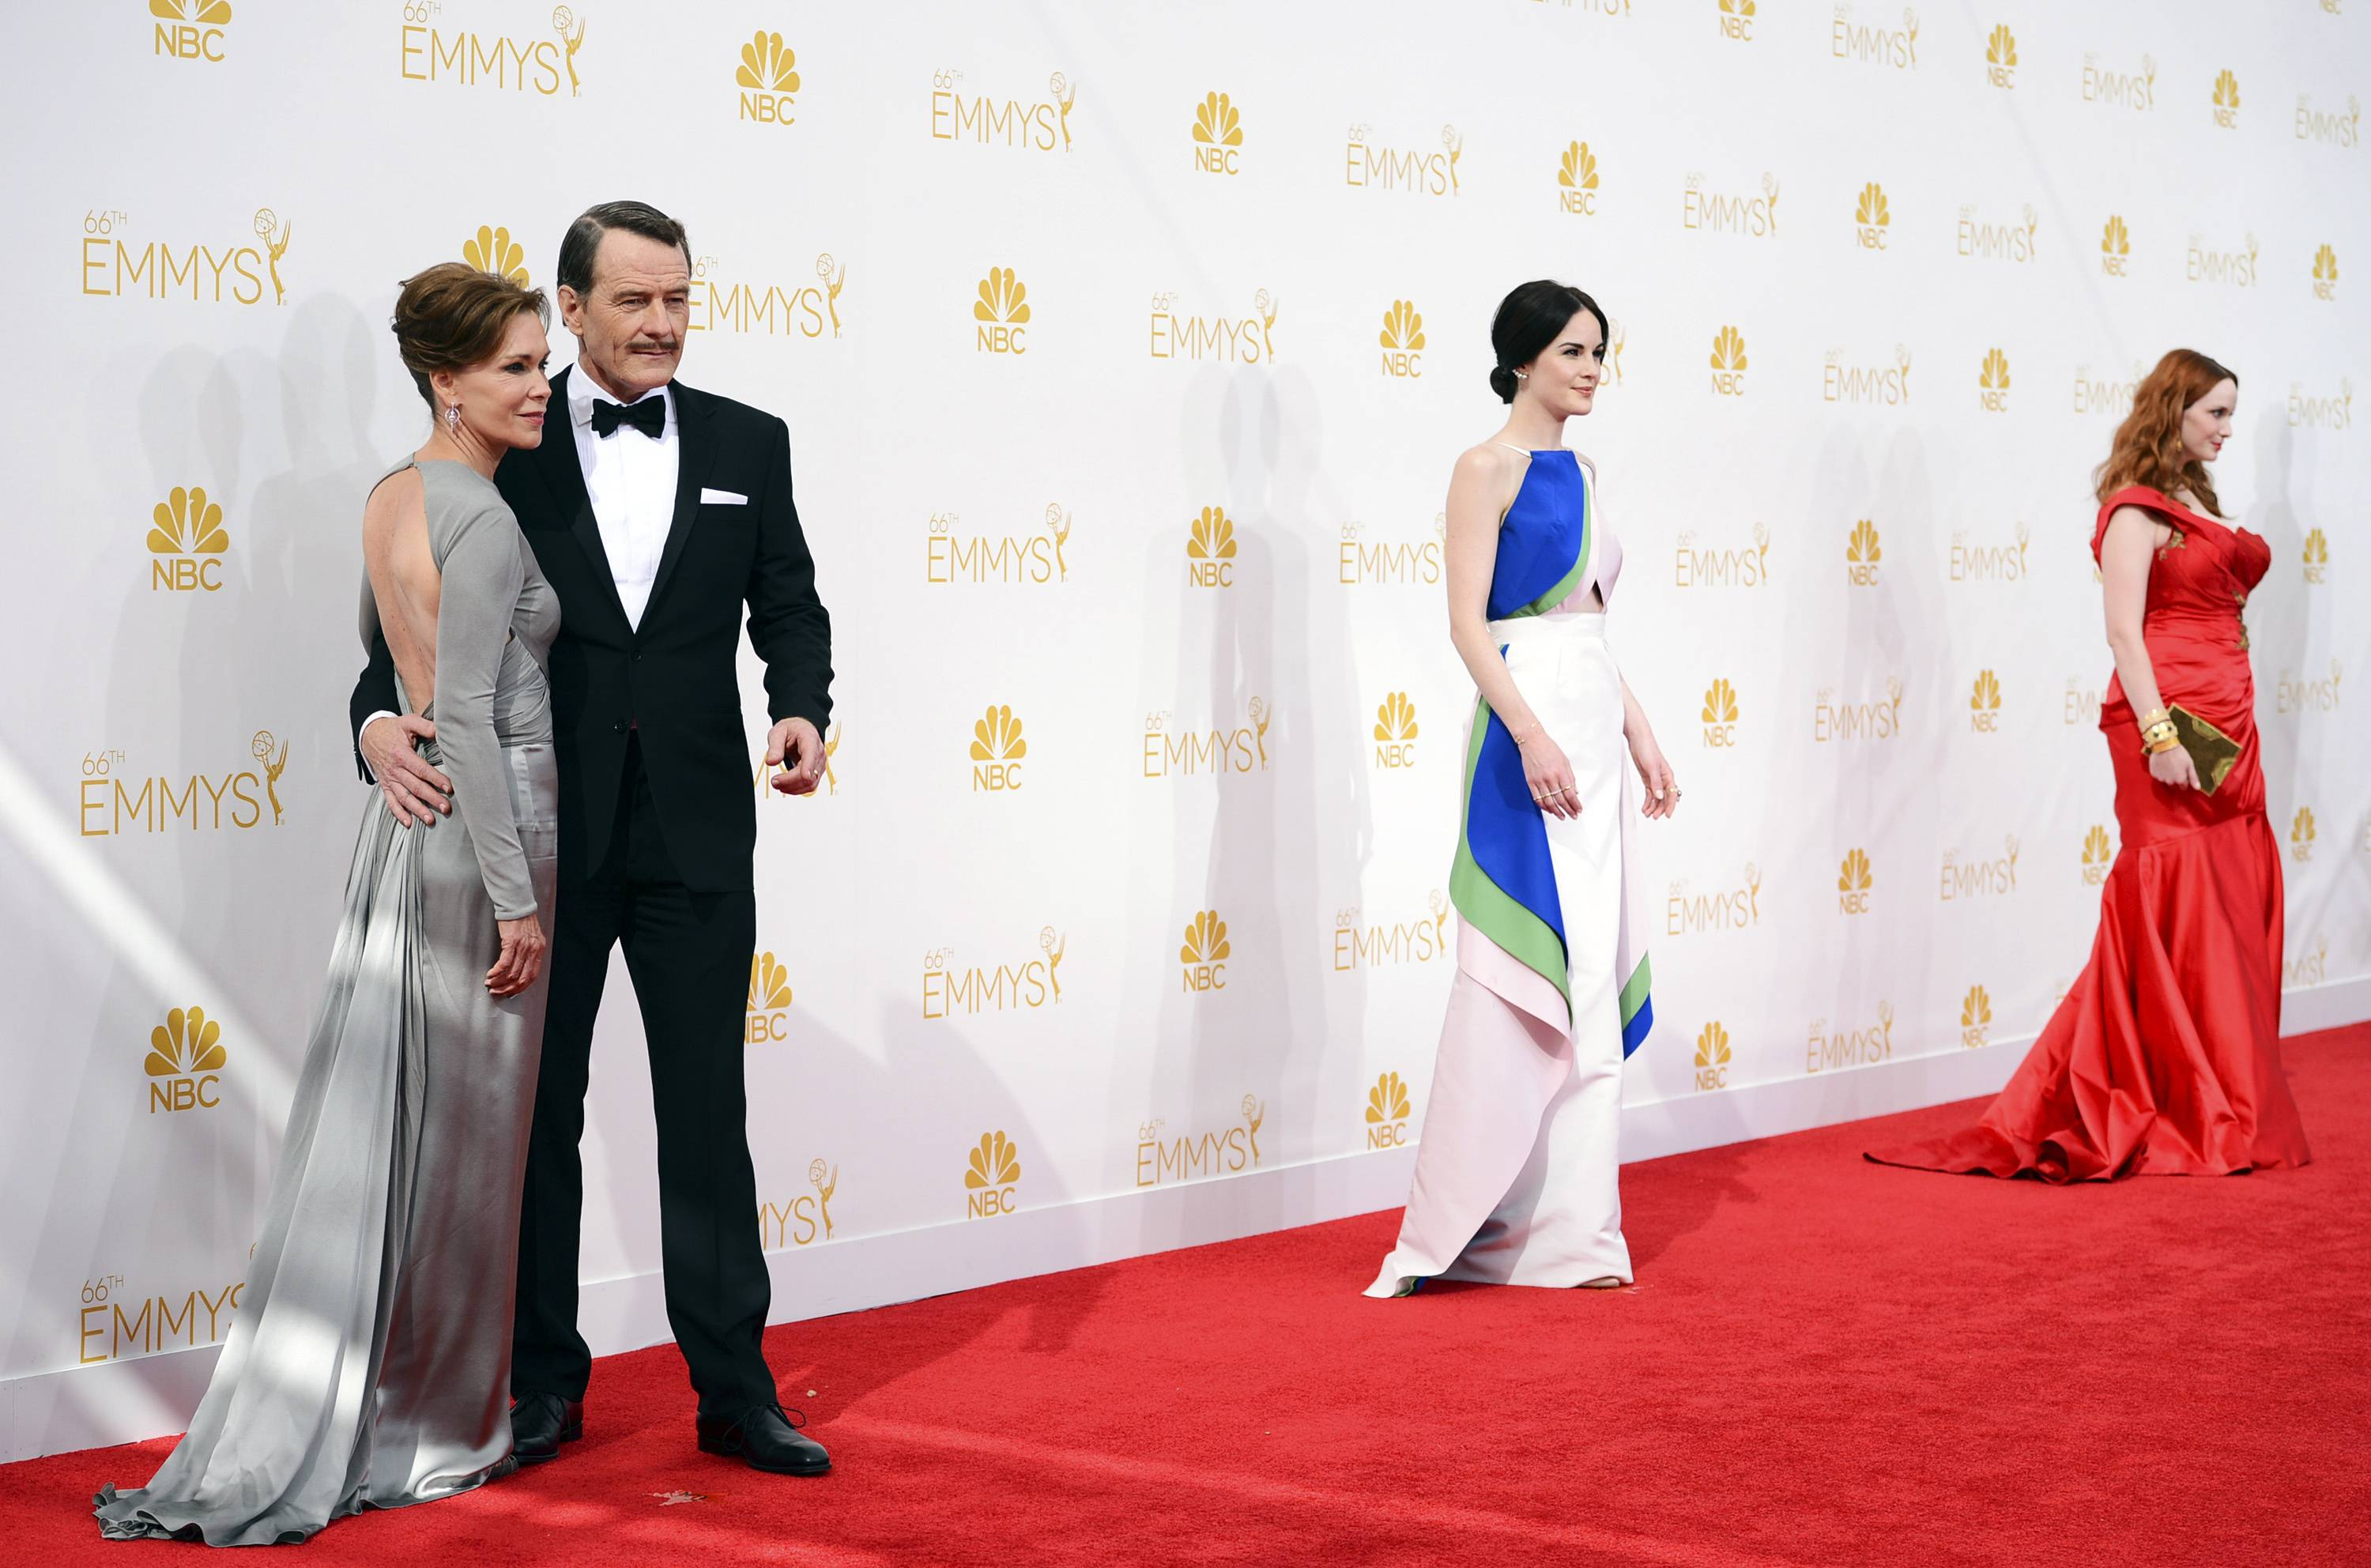 Images: Fashion at the 2014 Emmy Awards